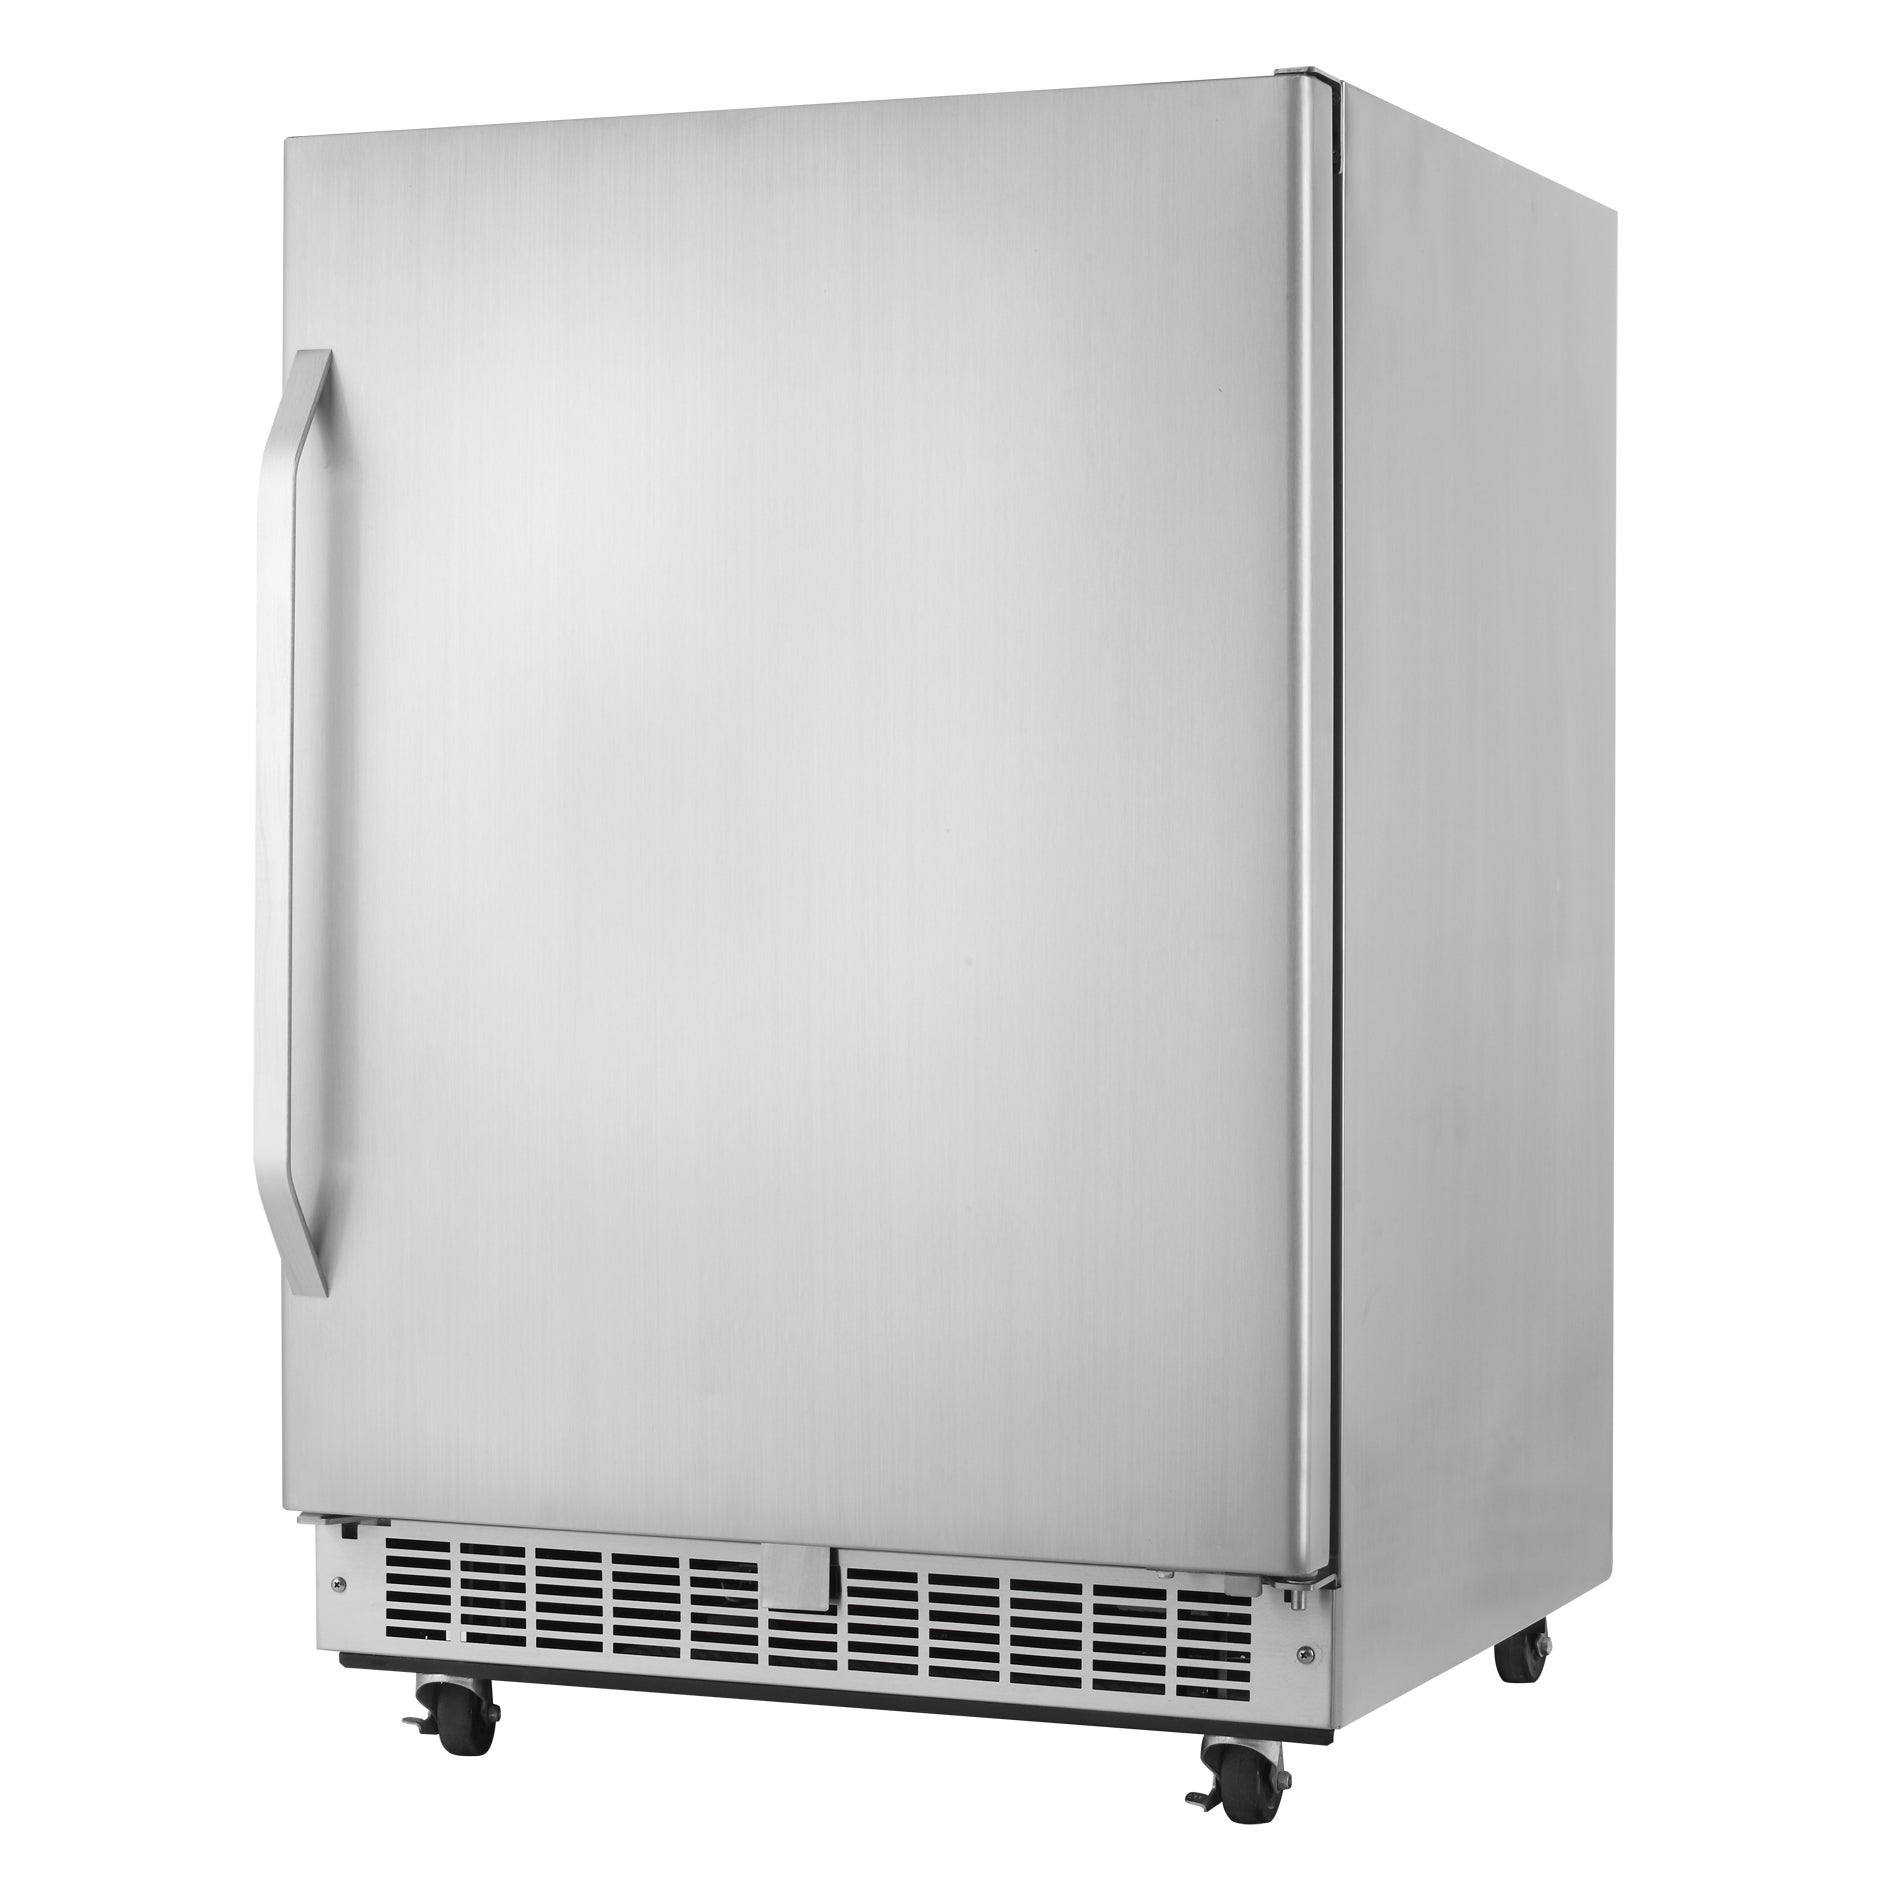 Silhouette Select Outdoor-certified Refrigerator at Sears.com